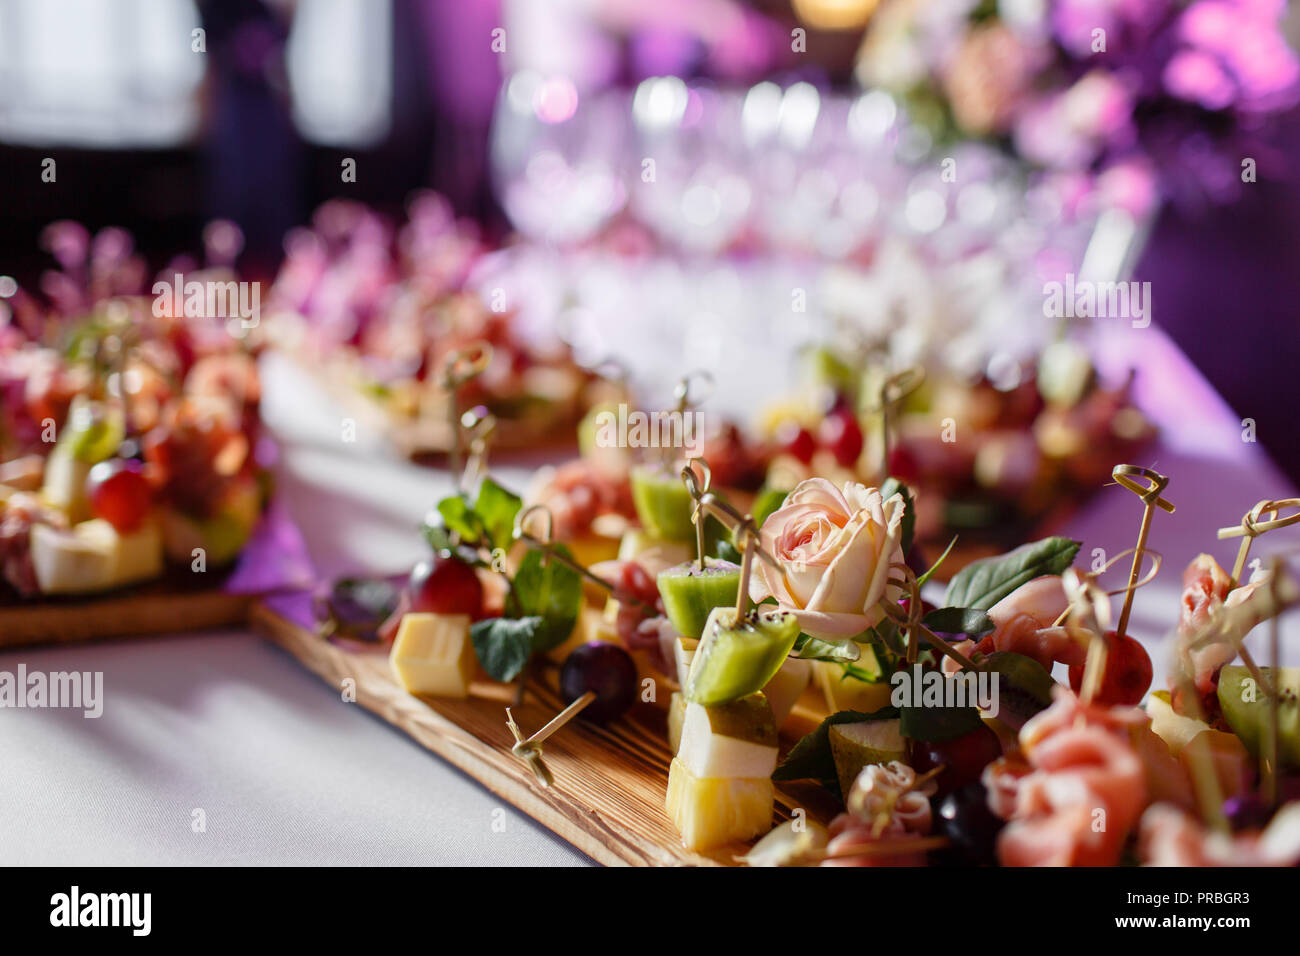 the buffet at the reception. Assortment of canapes on wooden board. Banquet service. catering food, snacks with cheese, jamon, prosciutto and fruit - Stock Image